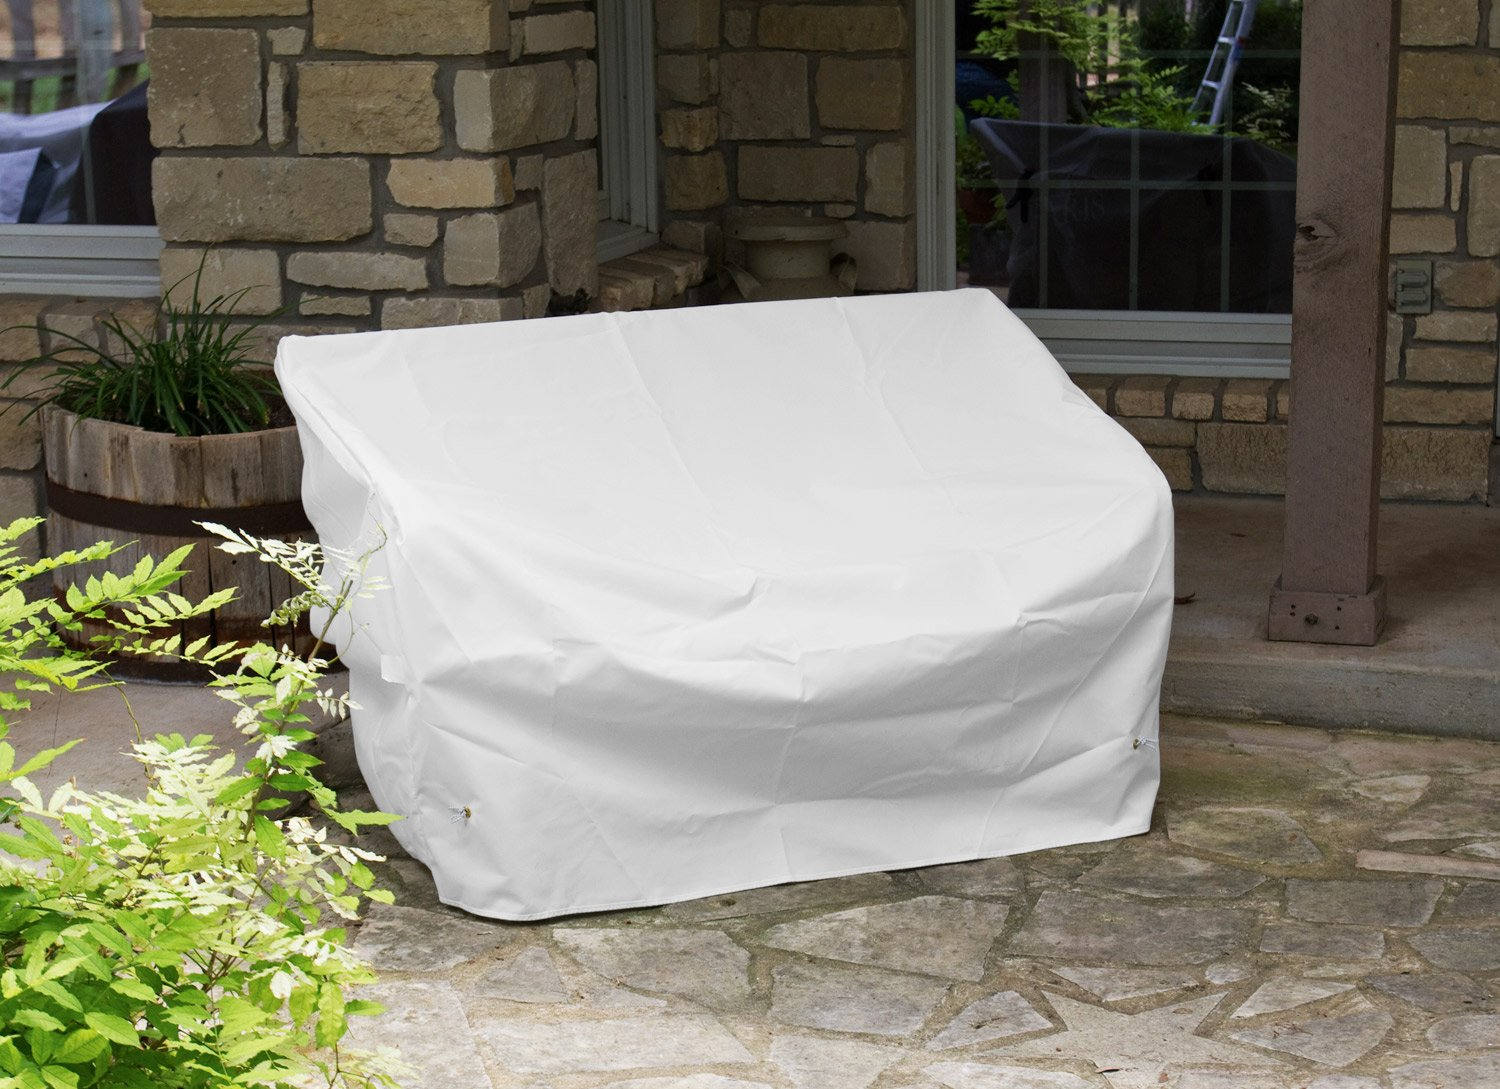 KoverRoos Weathermax 14204 5-Feet Bench/Glider Cover, 75-Inch Width by 28-Inch Diameter by 37-Inch Height, White by KOVERROOS (Image #4)